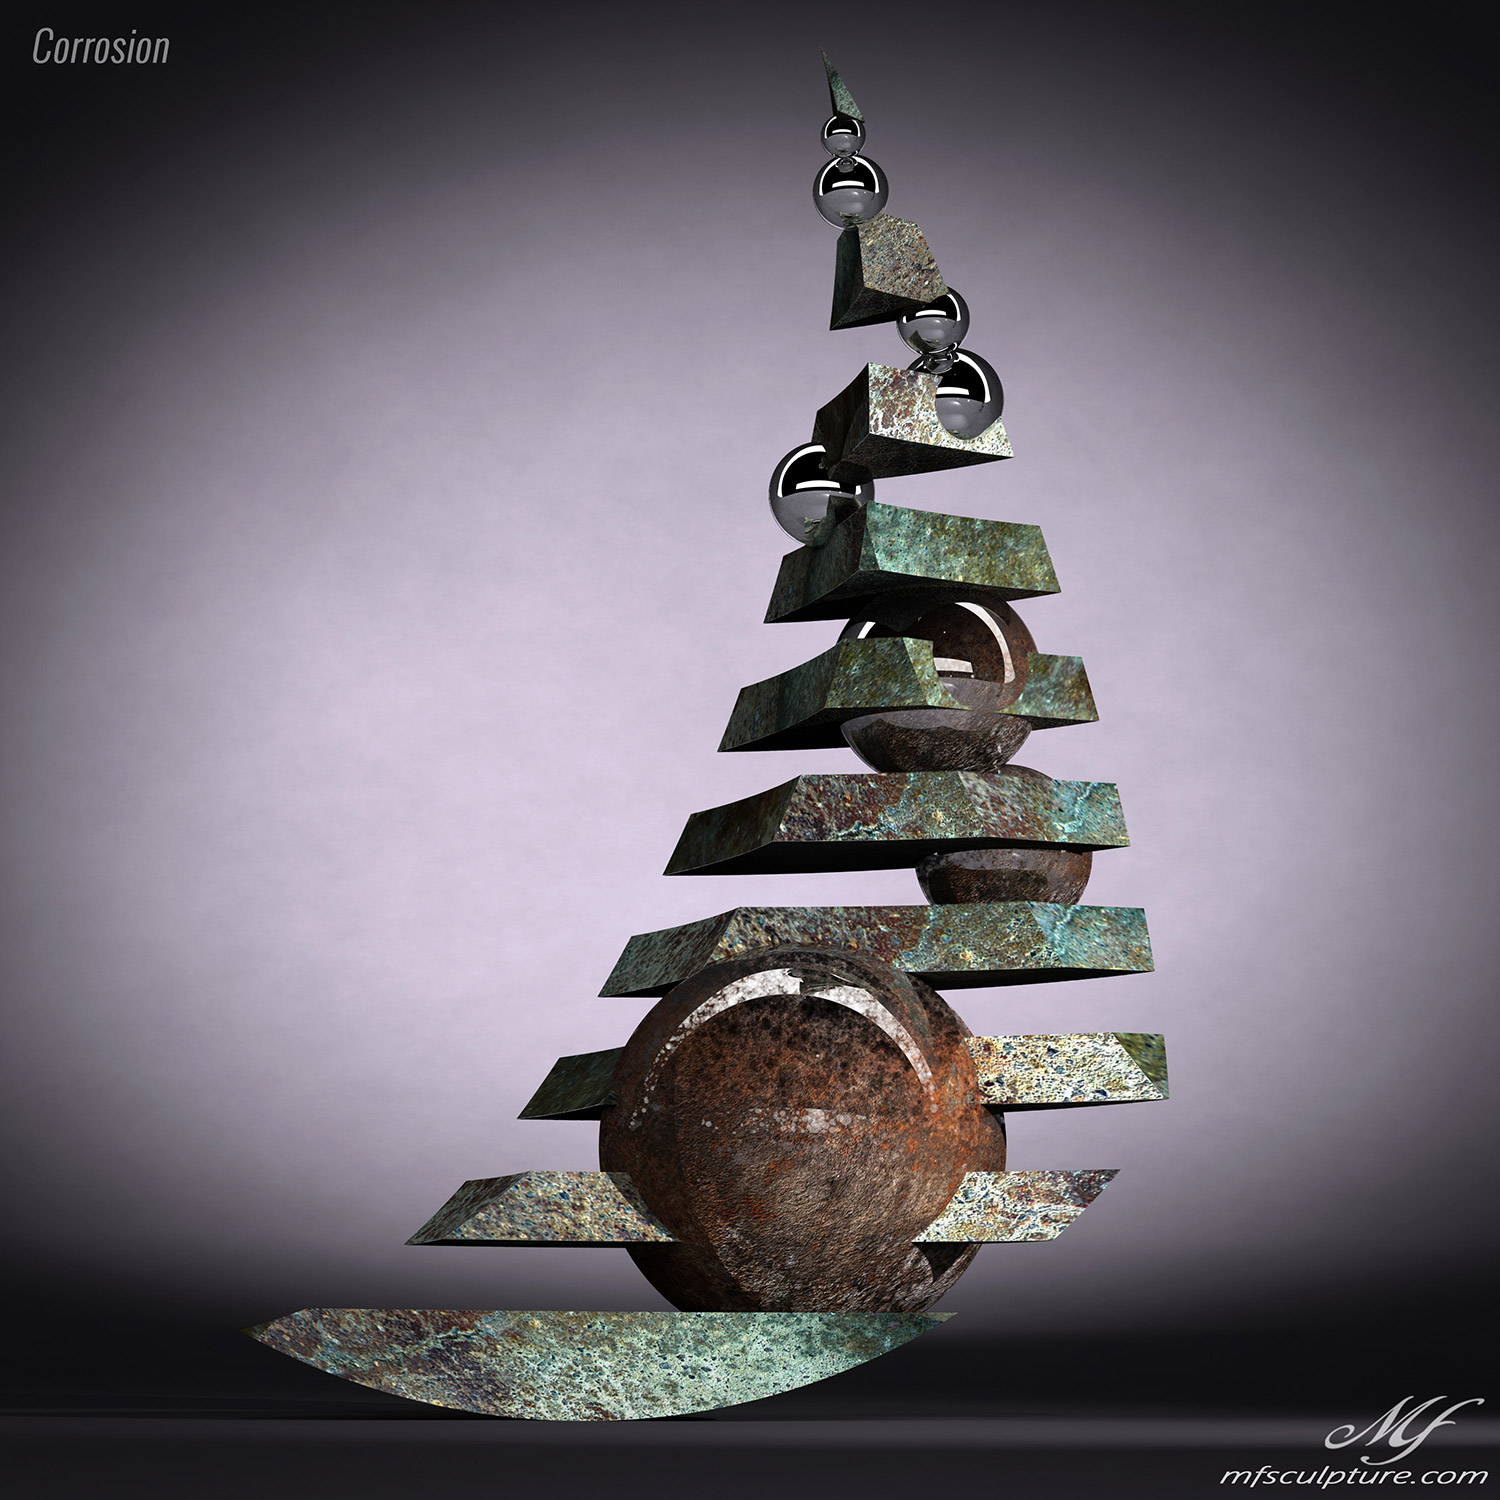 Corrosion Contemporary Sculpture Abstract Art 9